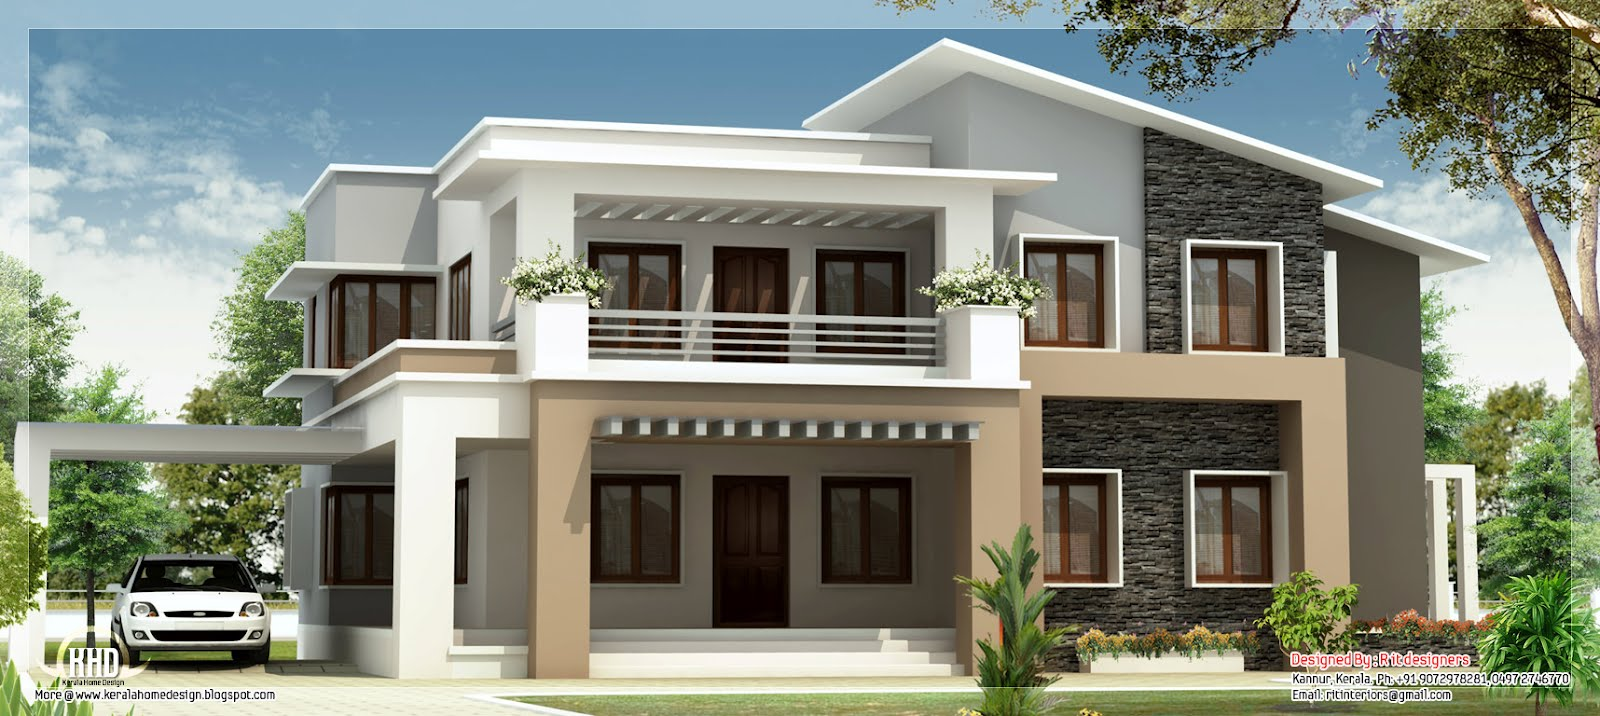 Modern mix double floor home design kerala home design for 1 5 floor house plans